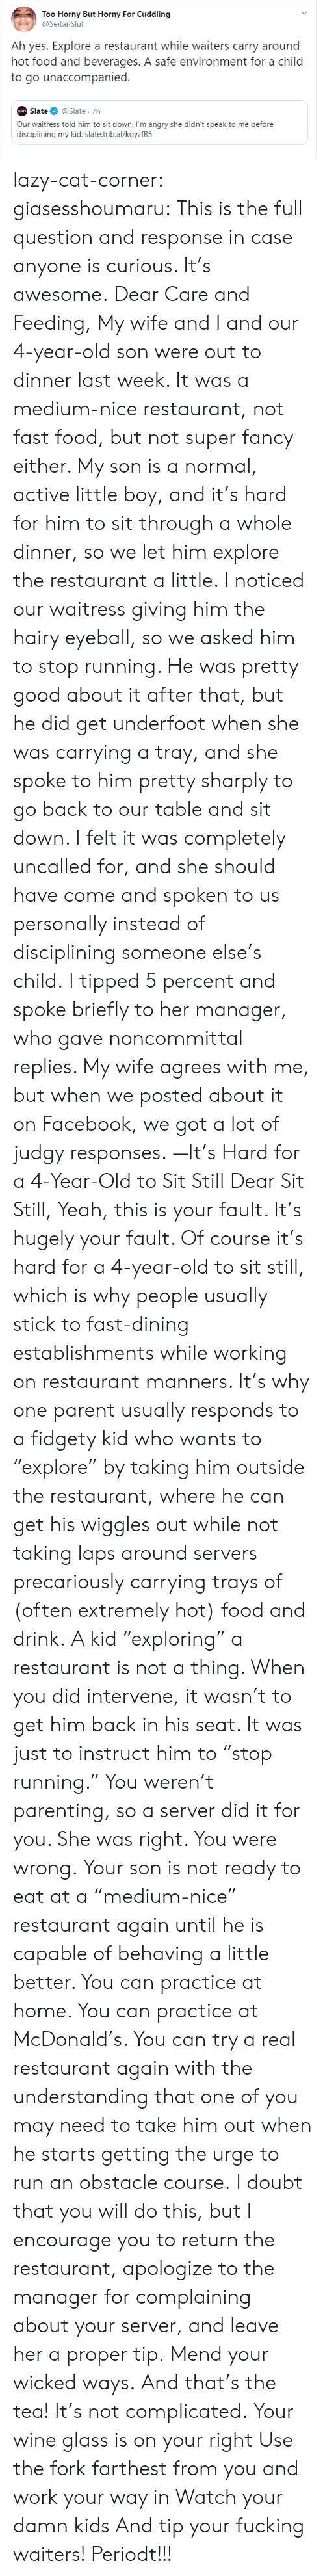 "Yeah This: Too Horny But Horny For Cuddling  @SeitanSlut  Ah yes. Explore a restaurant while waiters carry around  hot food and beverages. A safe environment for a child  to go unaccompanied.  Slate  @Slate 7h  SLATE  Our waitress told him to sit down. I'm angry she didn't speak to me before  disciplining my kid. slate.trib.al/koyzfB5 lazy-cat-corner: giasesshoumaru:   This is the full question and response in case anyone is curious. It's awesome. Dear Care and Feeding, My wife and I and our 4-year-old son were out to dinner last week. It was a medium-nice restaurant, not fast food, but not super fancy either. My son is a normal, active little boy, and it's hard for him to sit through a whole dinner, so we let him explore the restaurant a little. I noticed our waitress giving him the hairy eyeball, so we asked him to stop running. He was pretty good about it after that, but he did get underfoot when she was carrying a tray, and she spoke to him pretty sharply to go back to our table and sit down. I felt it was completely uncalled for, and she should have come and spoken to us personally instead of disciplining someone else's child. I tipped 5 percent and spoke briefly to her manager, who gave noncommittal replies. My wife agrees with me, but when we posted about it on Facebook, we got a lot of judgy responses. —It's Hard for a 4-Year-Old to Sit Still Dear Sit Still, Yeah, this is your fault. It's hugely your fault. Of course it's hard for a 4-year-old to sit still, which is why people usually stick to fast-dining establishments while working on restaurant manners. It's why one parent usually responds to a fidgety kid who wants to ""explore"" by taking him outside the restaurant, where he can get his wiggles out while not taking laps around servers precariously carrying trays of (often extremely hot) food and drink. A kid ""exploring"" a restaurant is not a thing. When you did intervene, it wasn't to get him back in his seat. It was just to instruct him to ""stop running."" You weren't parenting, so a server did it for you. She was right. You were wrong. Your son is not ready to eat at a ""medium-nice"" restaurant again until he is capable of behaving a little better. You can practice at home. You can practice at McDonald's. You can try a real restaurant again with the understanding that one of you may need to take him out when he starts getting the urge to run an obstacle course. I doubt that you will do this, but I encourage you to return the restaurant, apologize to the manager for complaining about your server, and leave her a proper tip. Mend your wicked ways.   And that's the tea!  It's not complicated. Your wine glass is on your right  Use the fork farthest from you and work your way in Watch your damn kids And tip your fucking waiters! Periodt!!!"